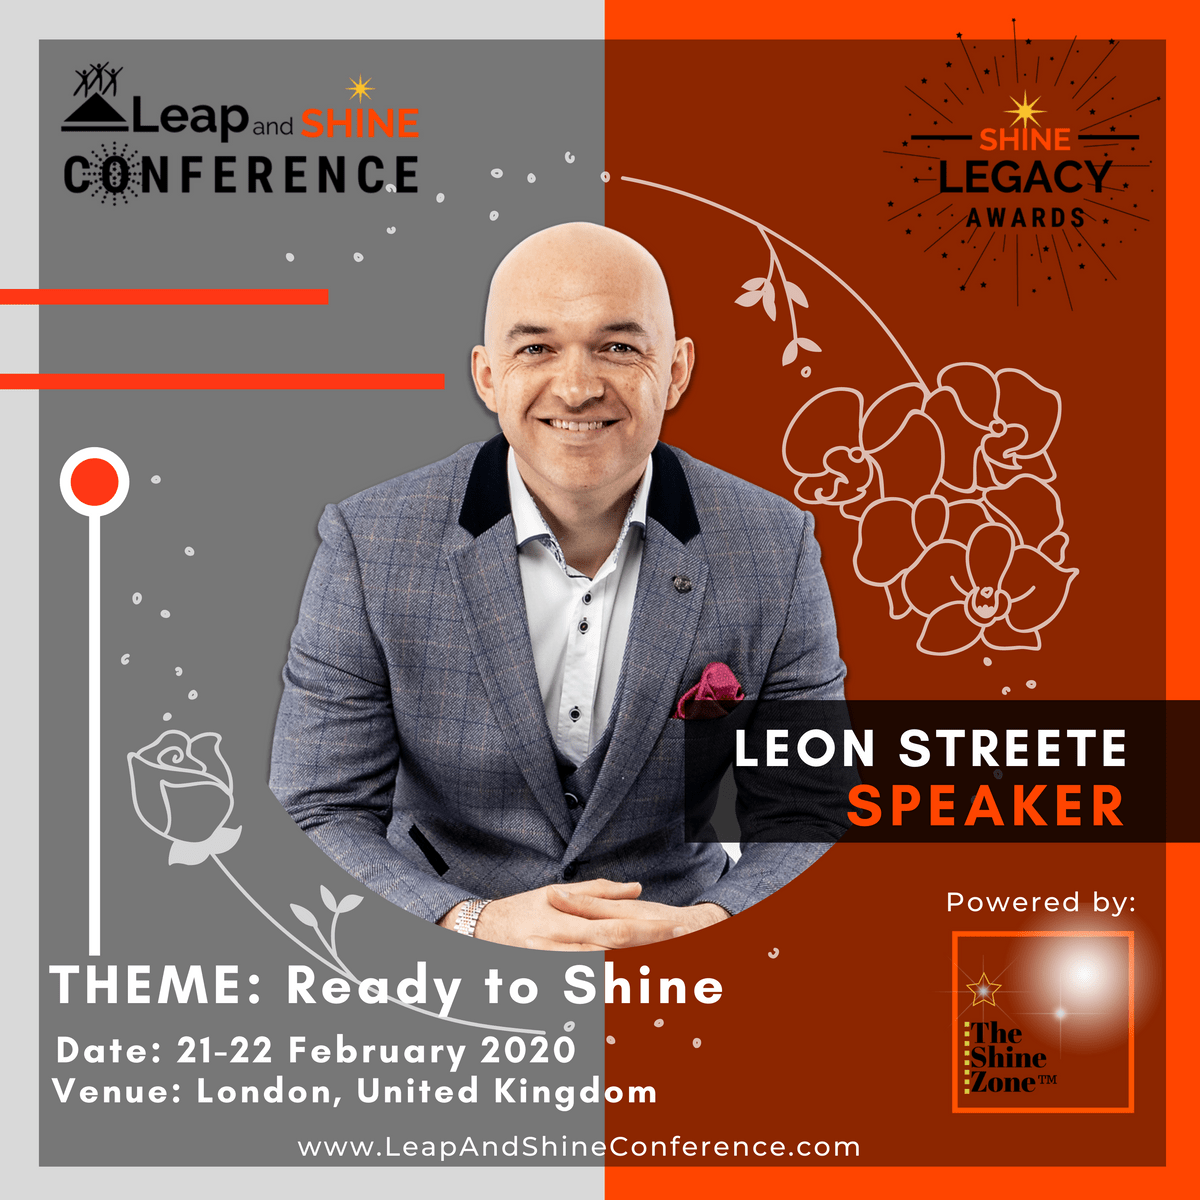 Leon Streete is speakinga t the Leap and Shine Conference 2020